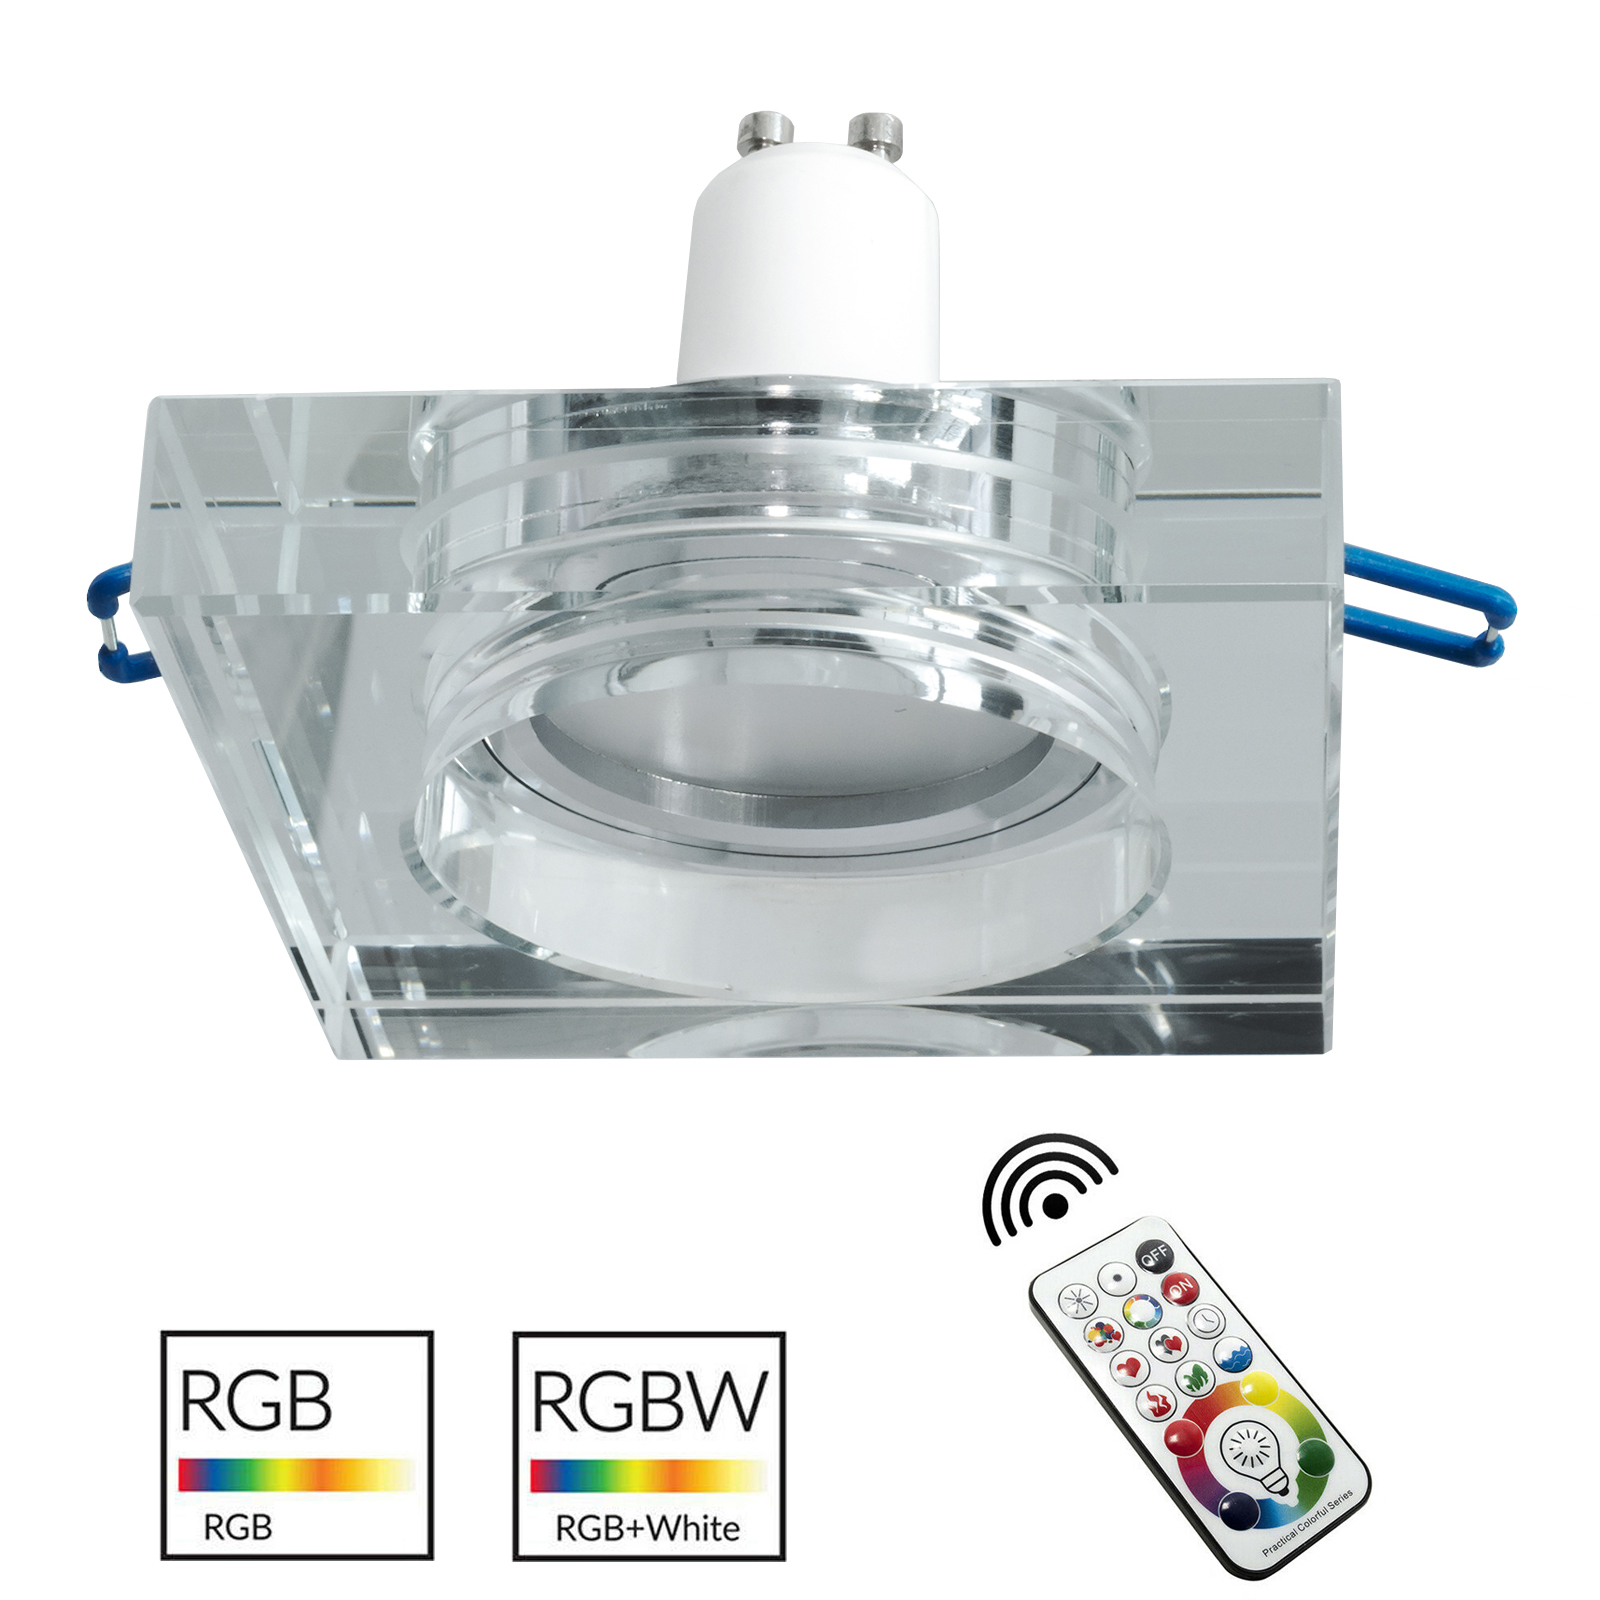 Downlight modern recessed square 6cm glass hanging lamp colorful LED GU10 RGB 6000K